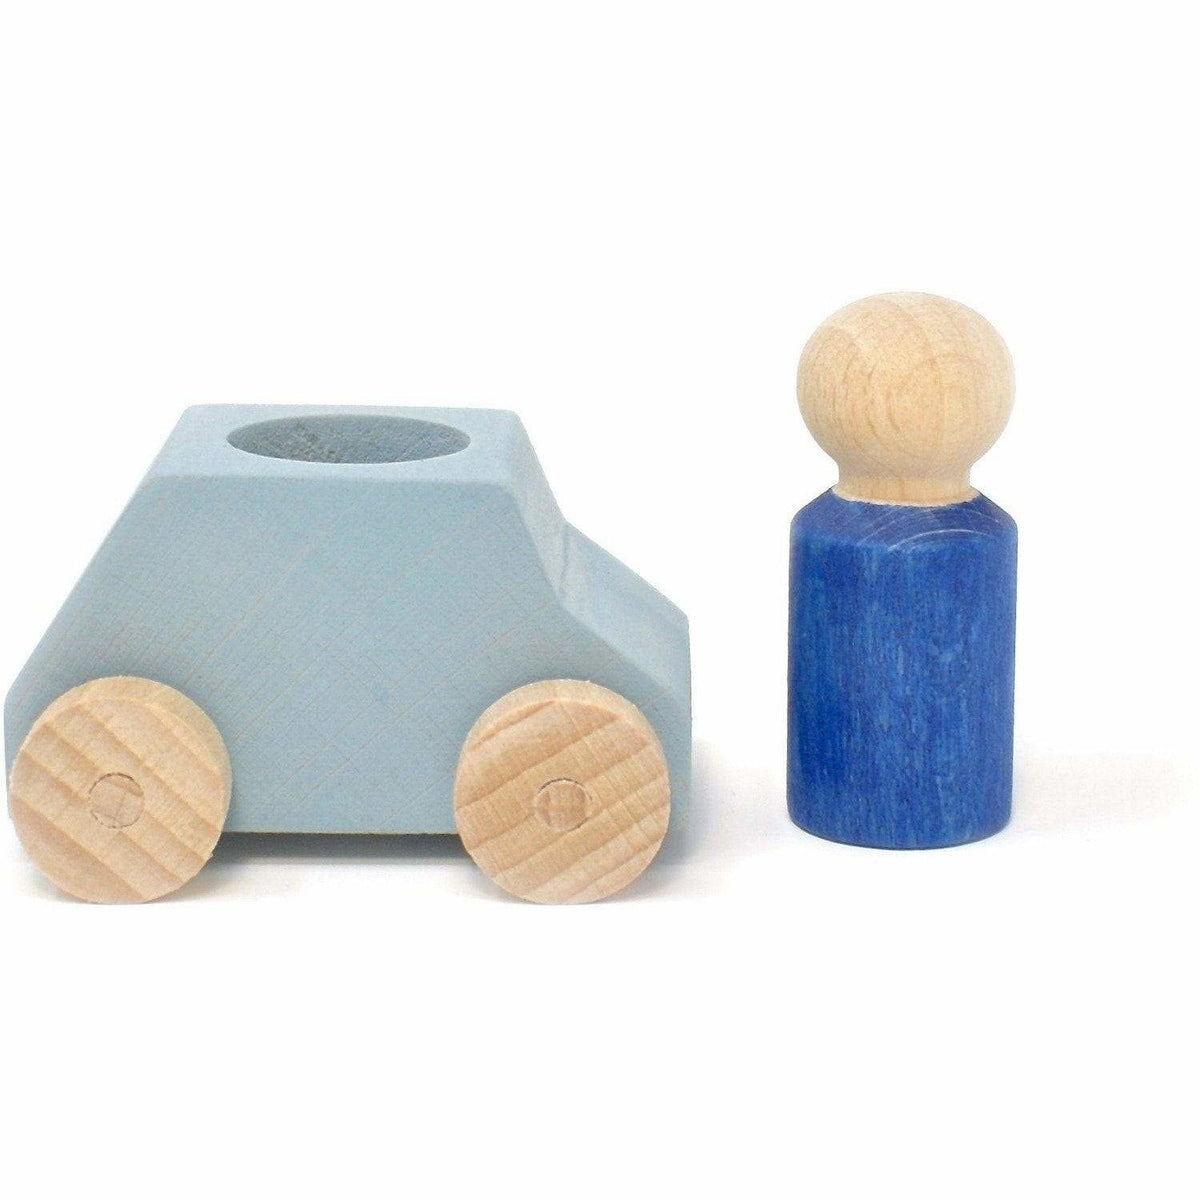 Lubulona Gray Wooden Toy Car